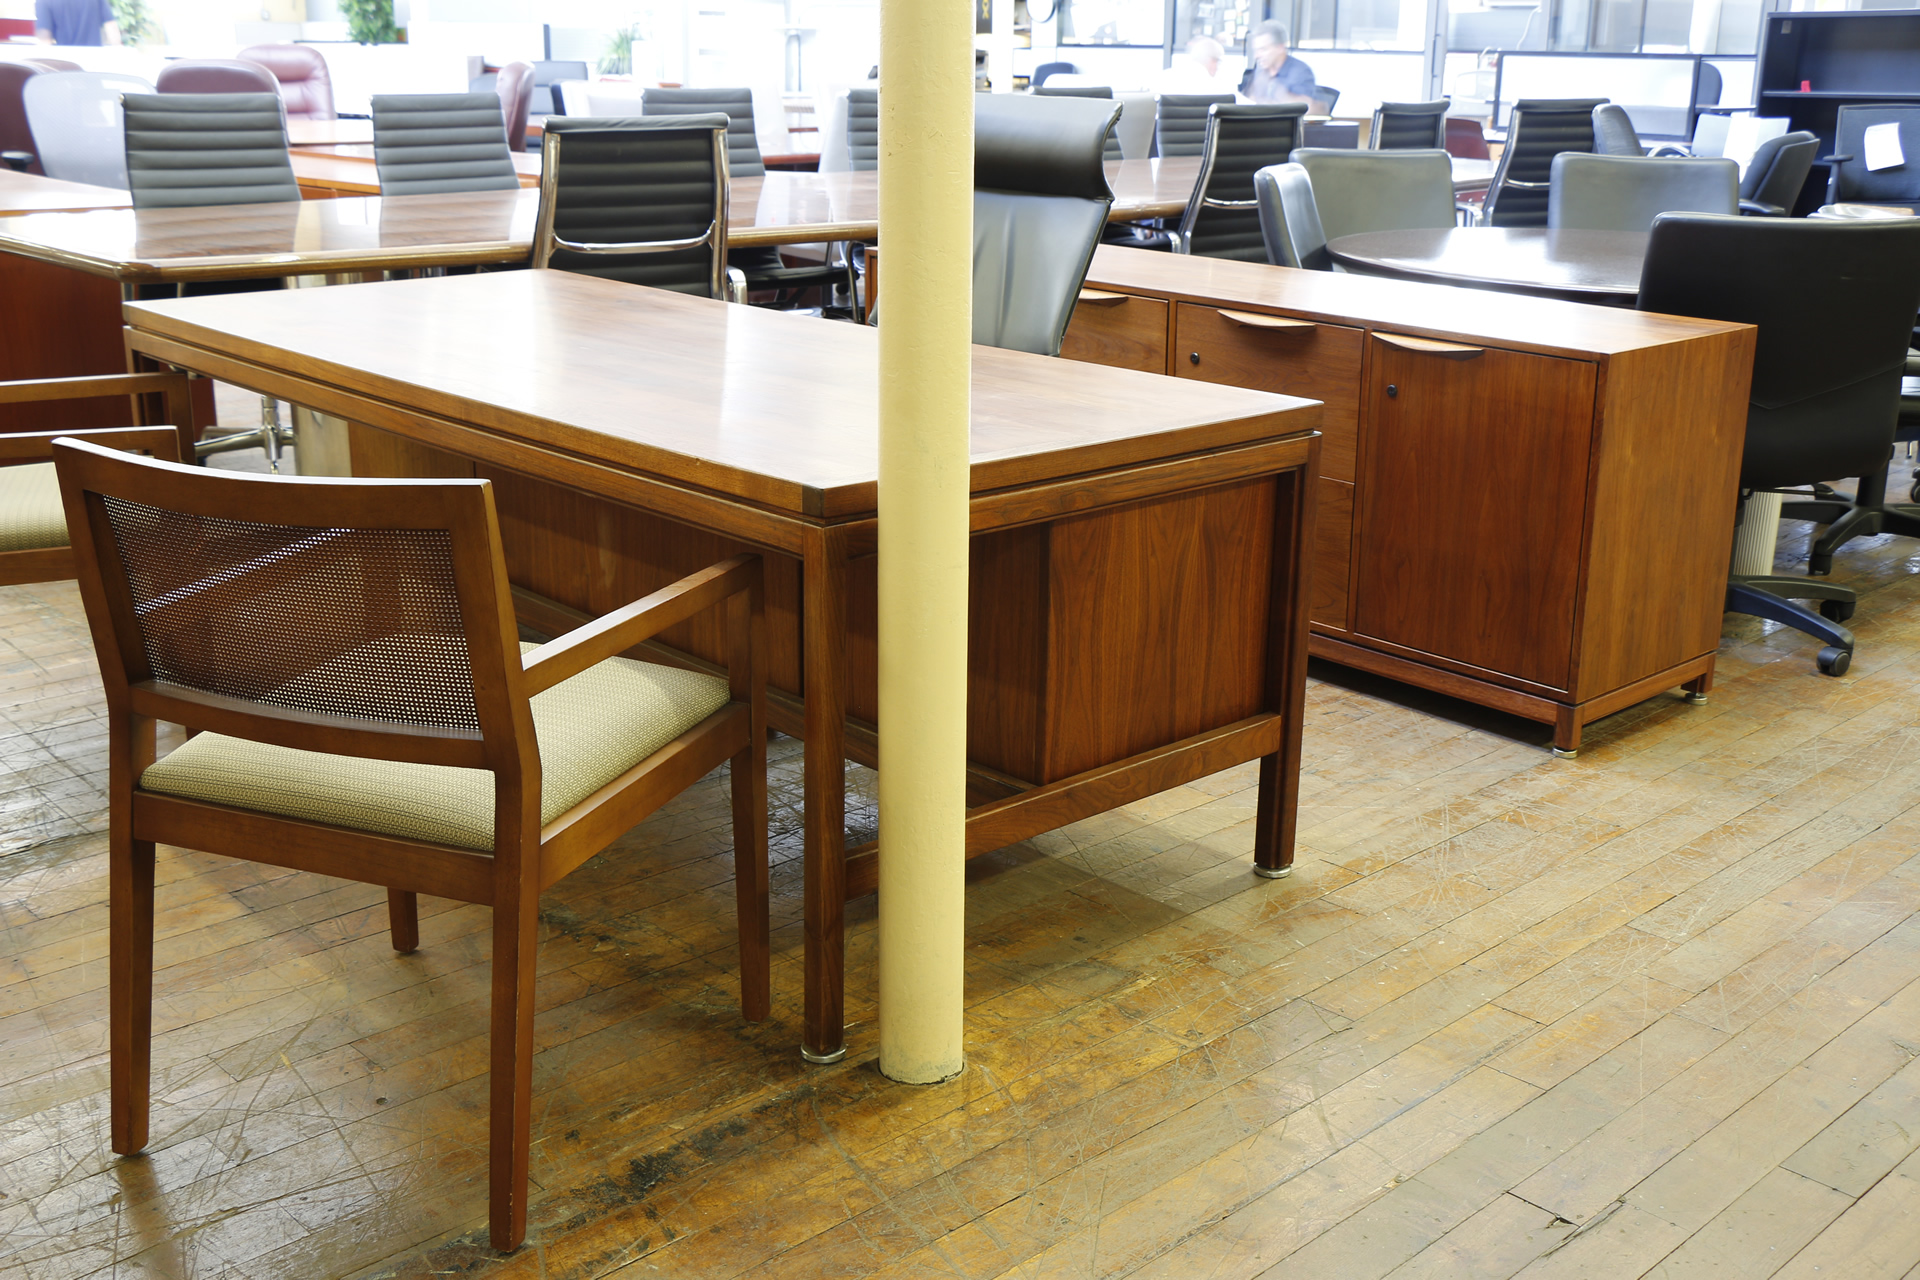 peartreeofficefurniture_peartreeofficefurniture_mg_4378.jpg